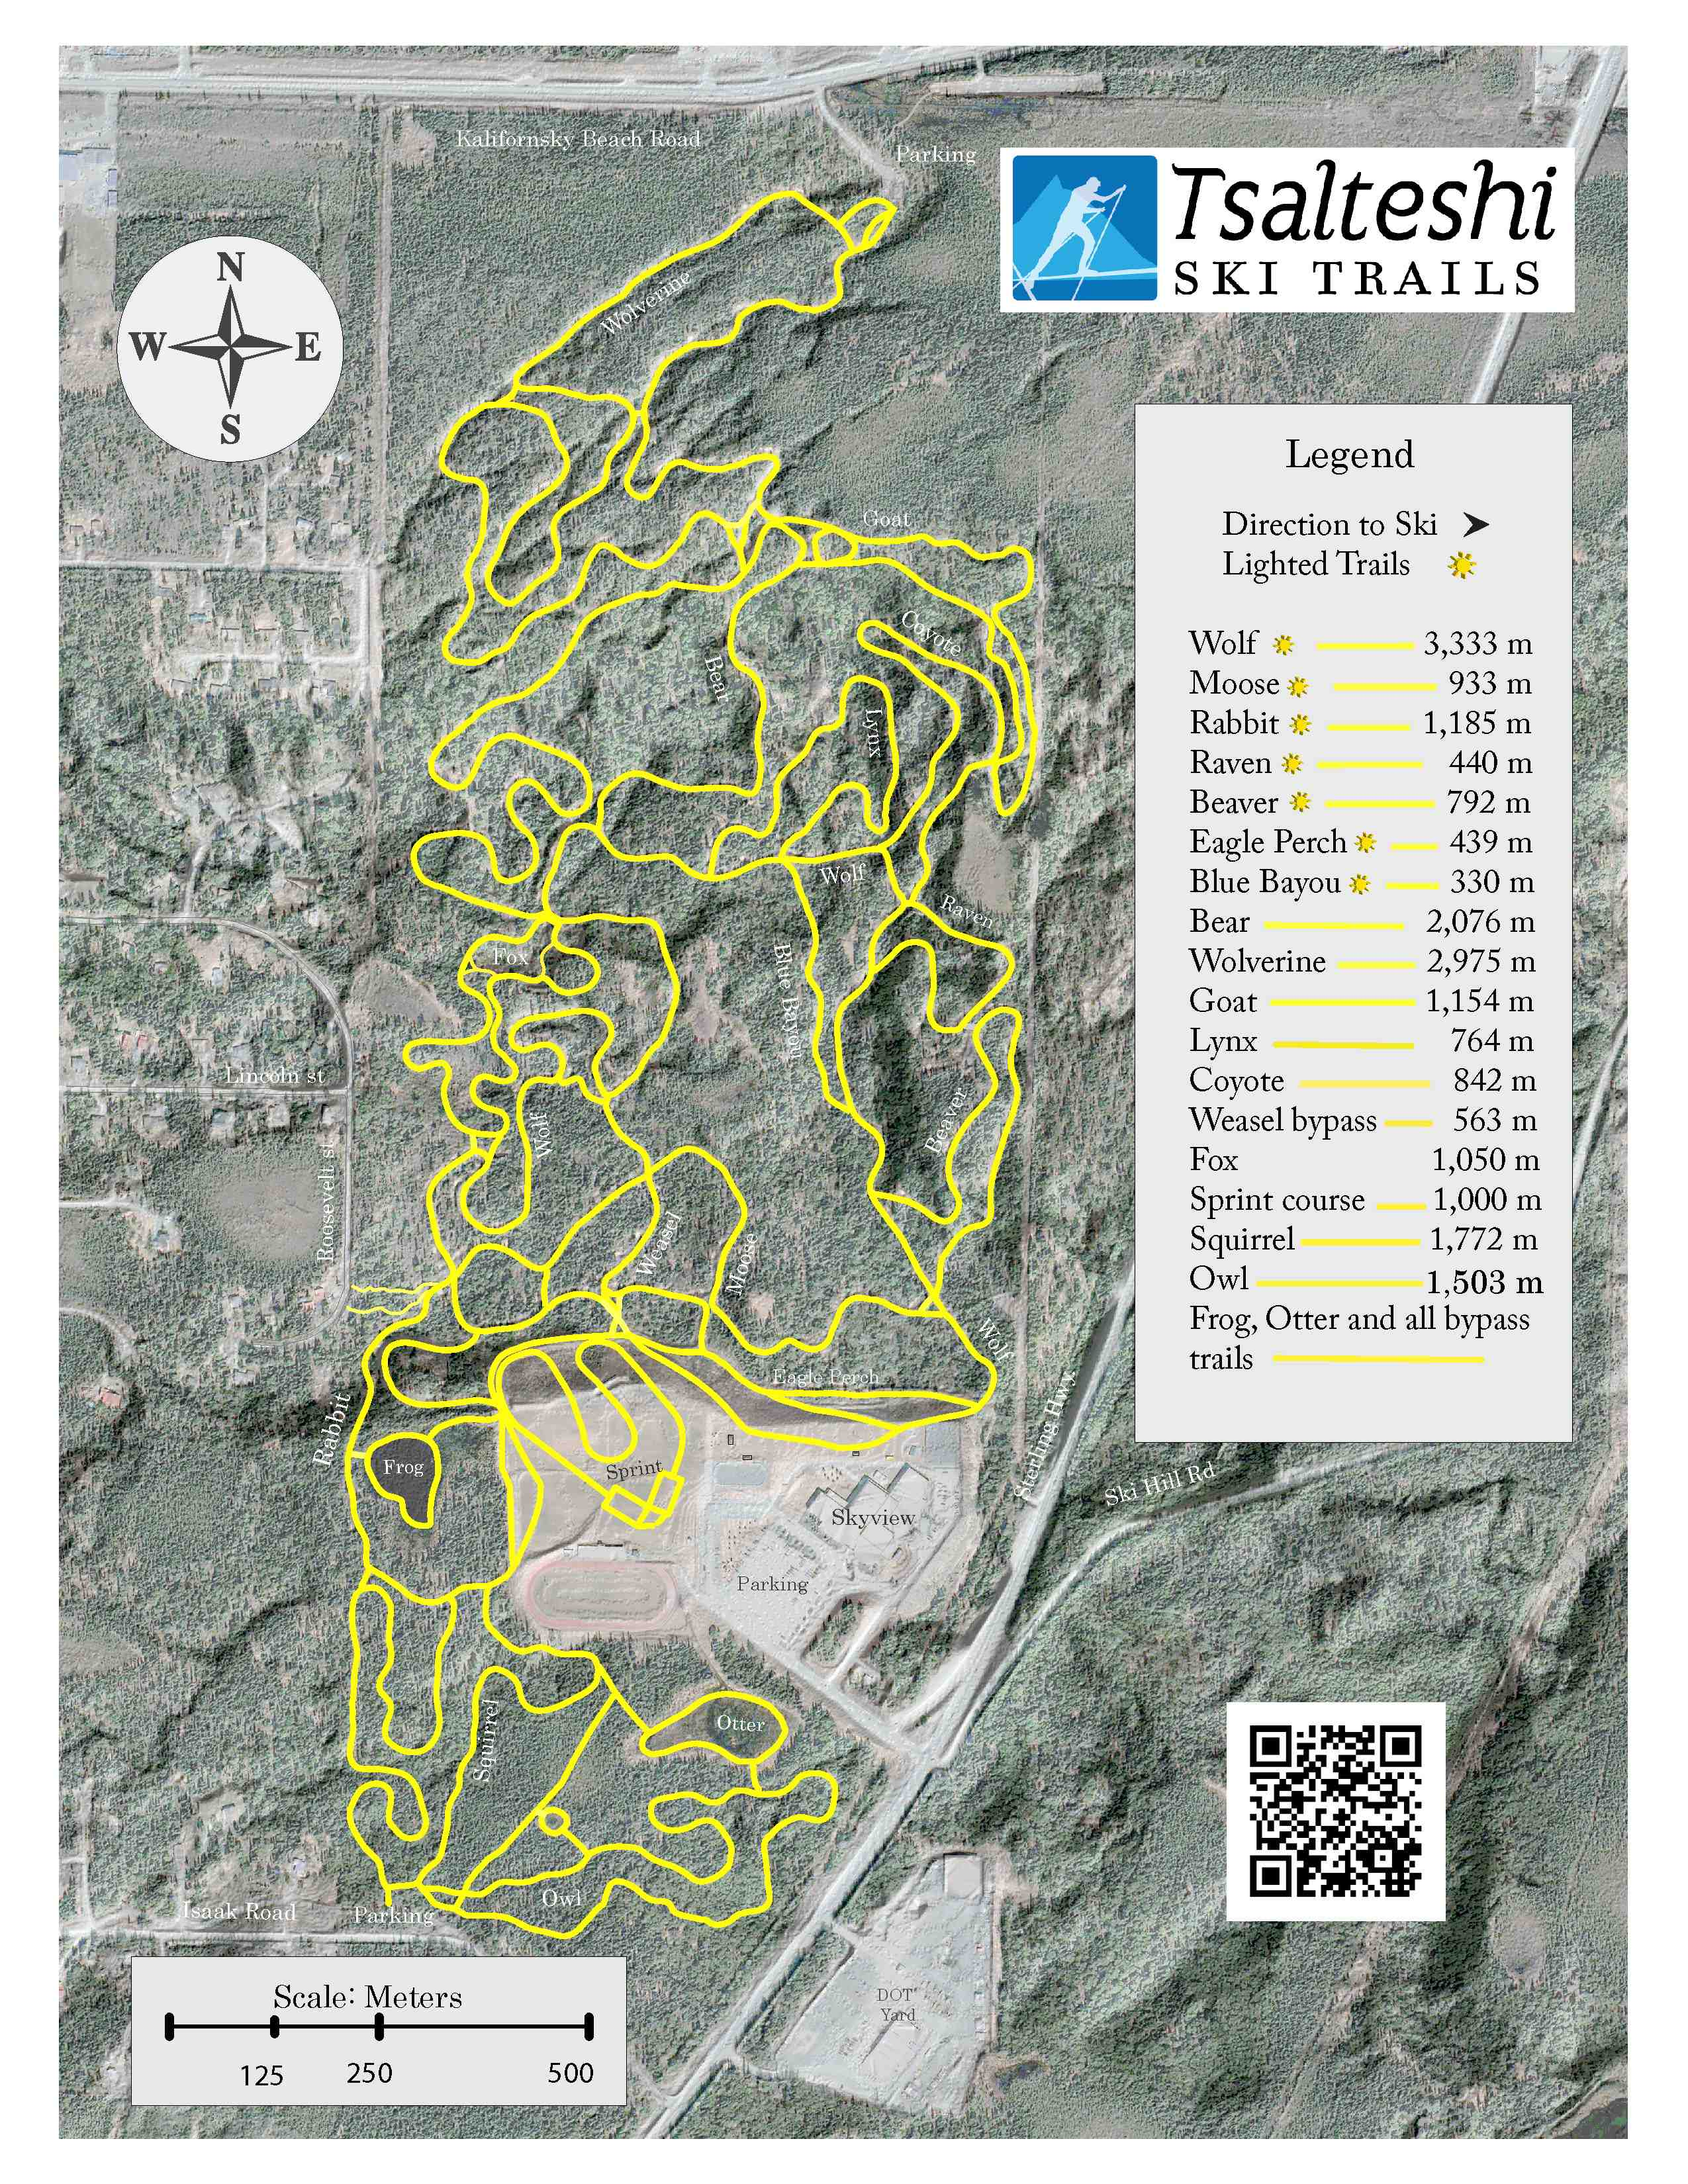 Trail map with distances